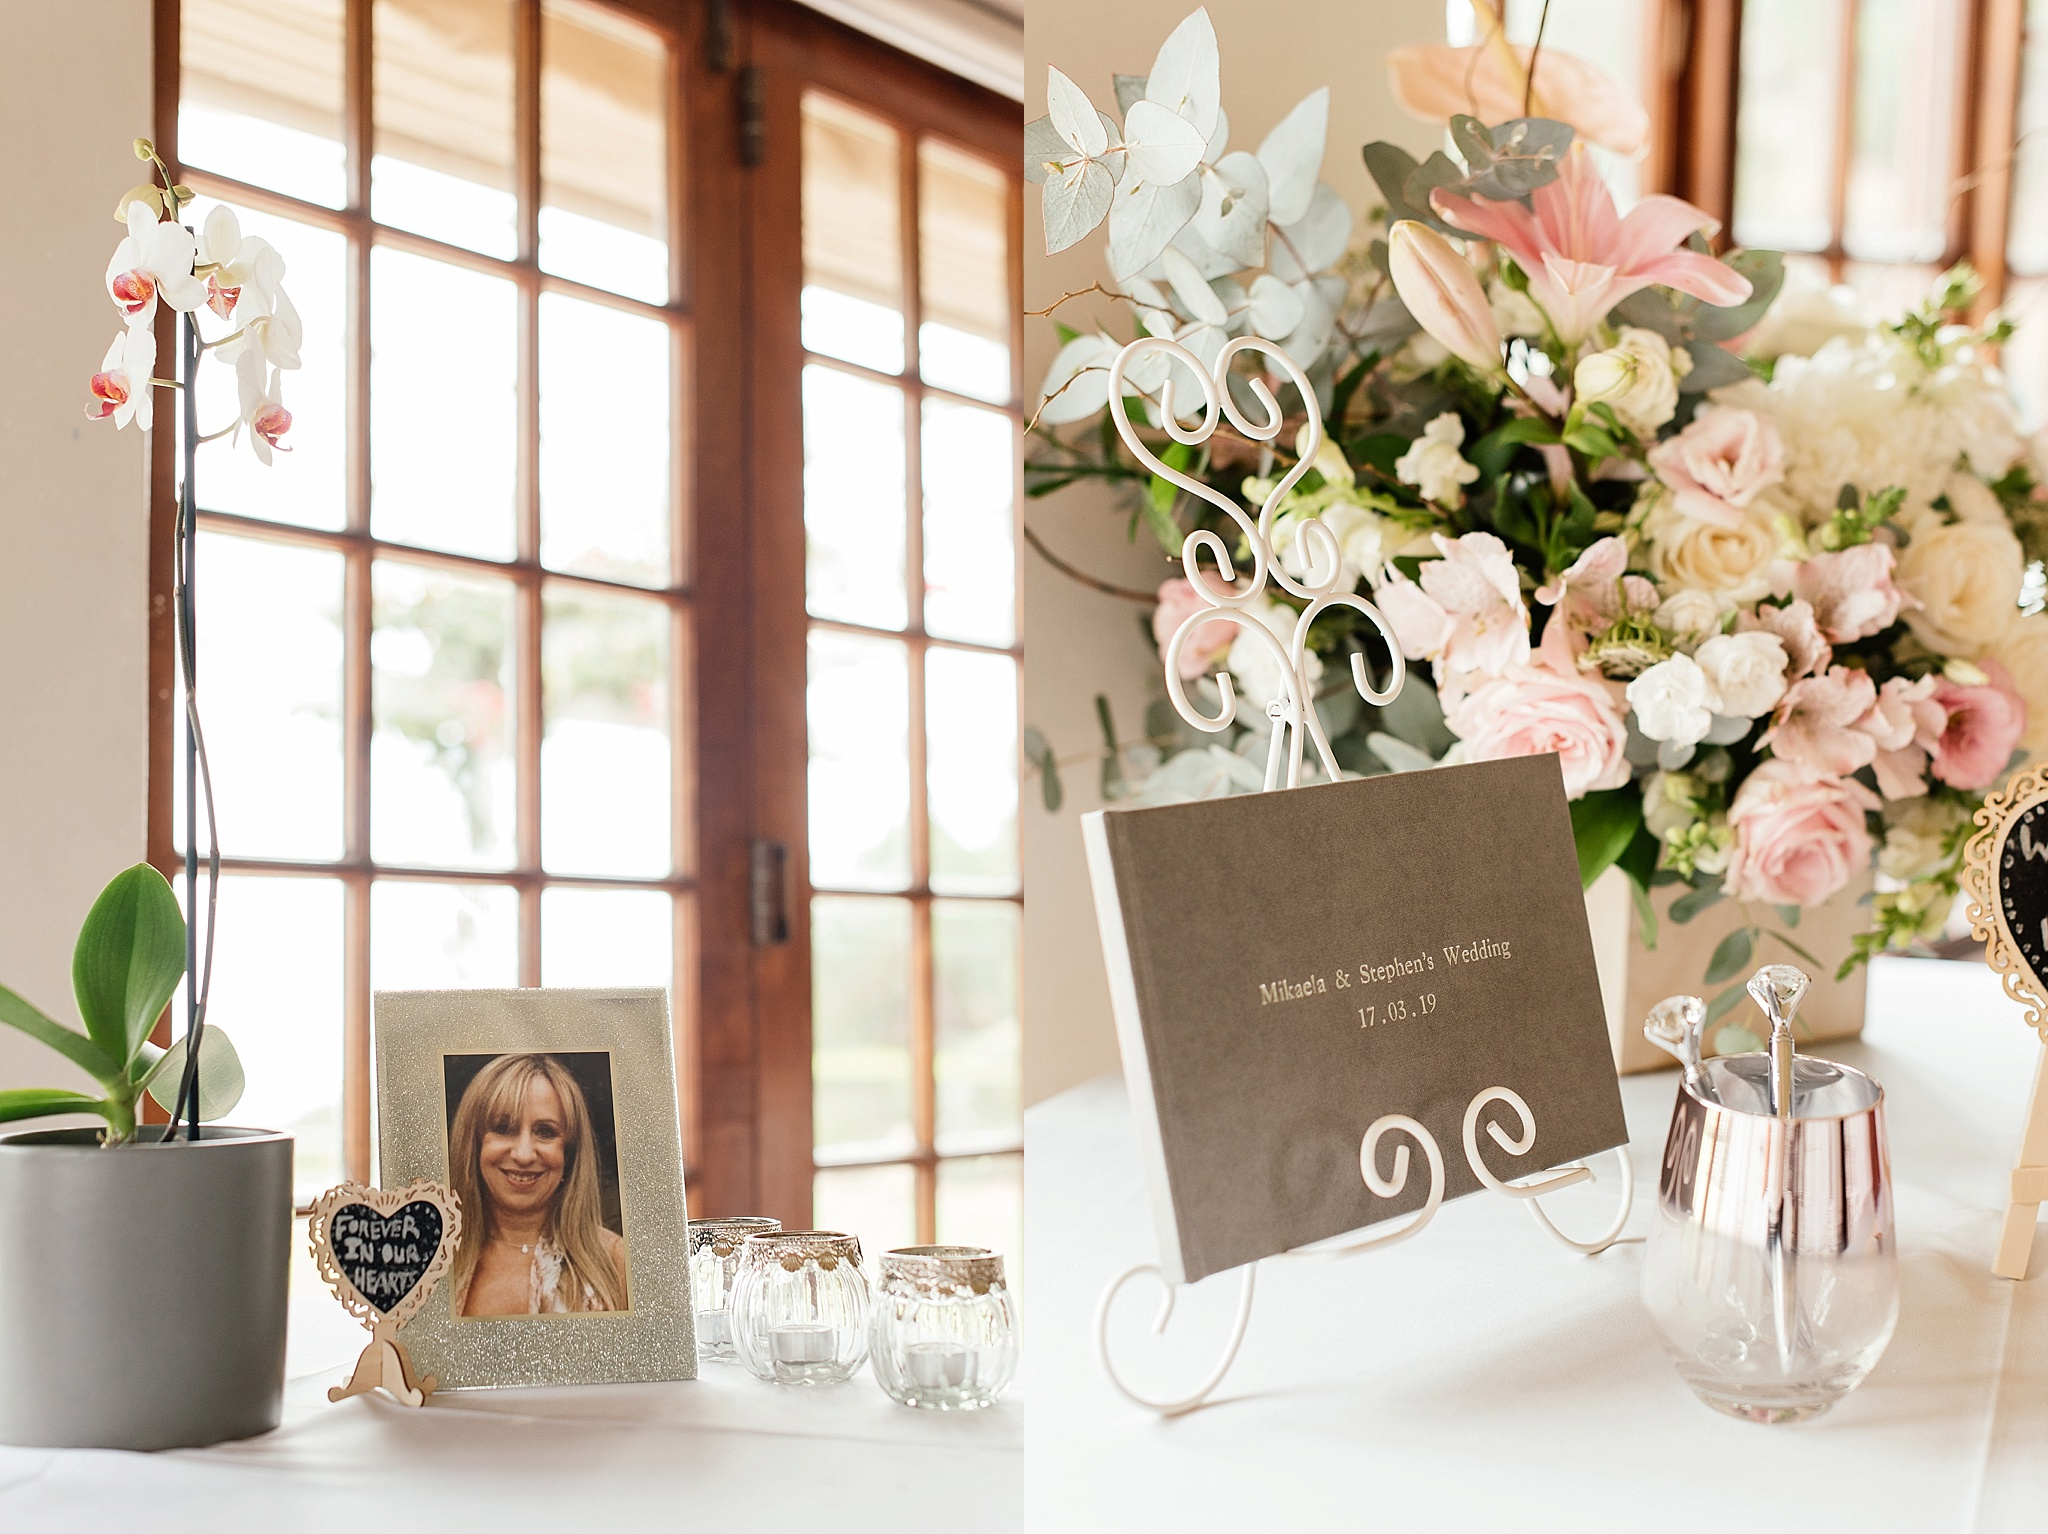 Cape Town Wedding Photographer Darren Bester - SuikerBossie - Stephen and Mikaela_0050.jpg